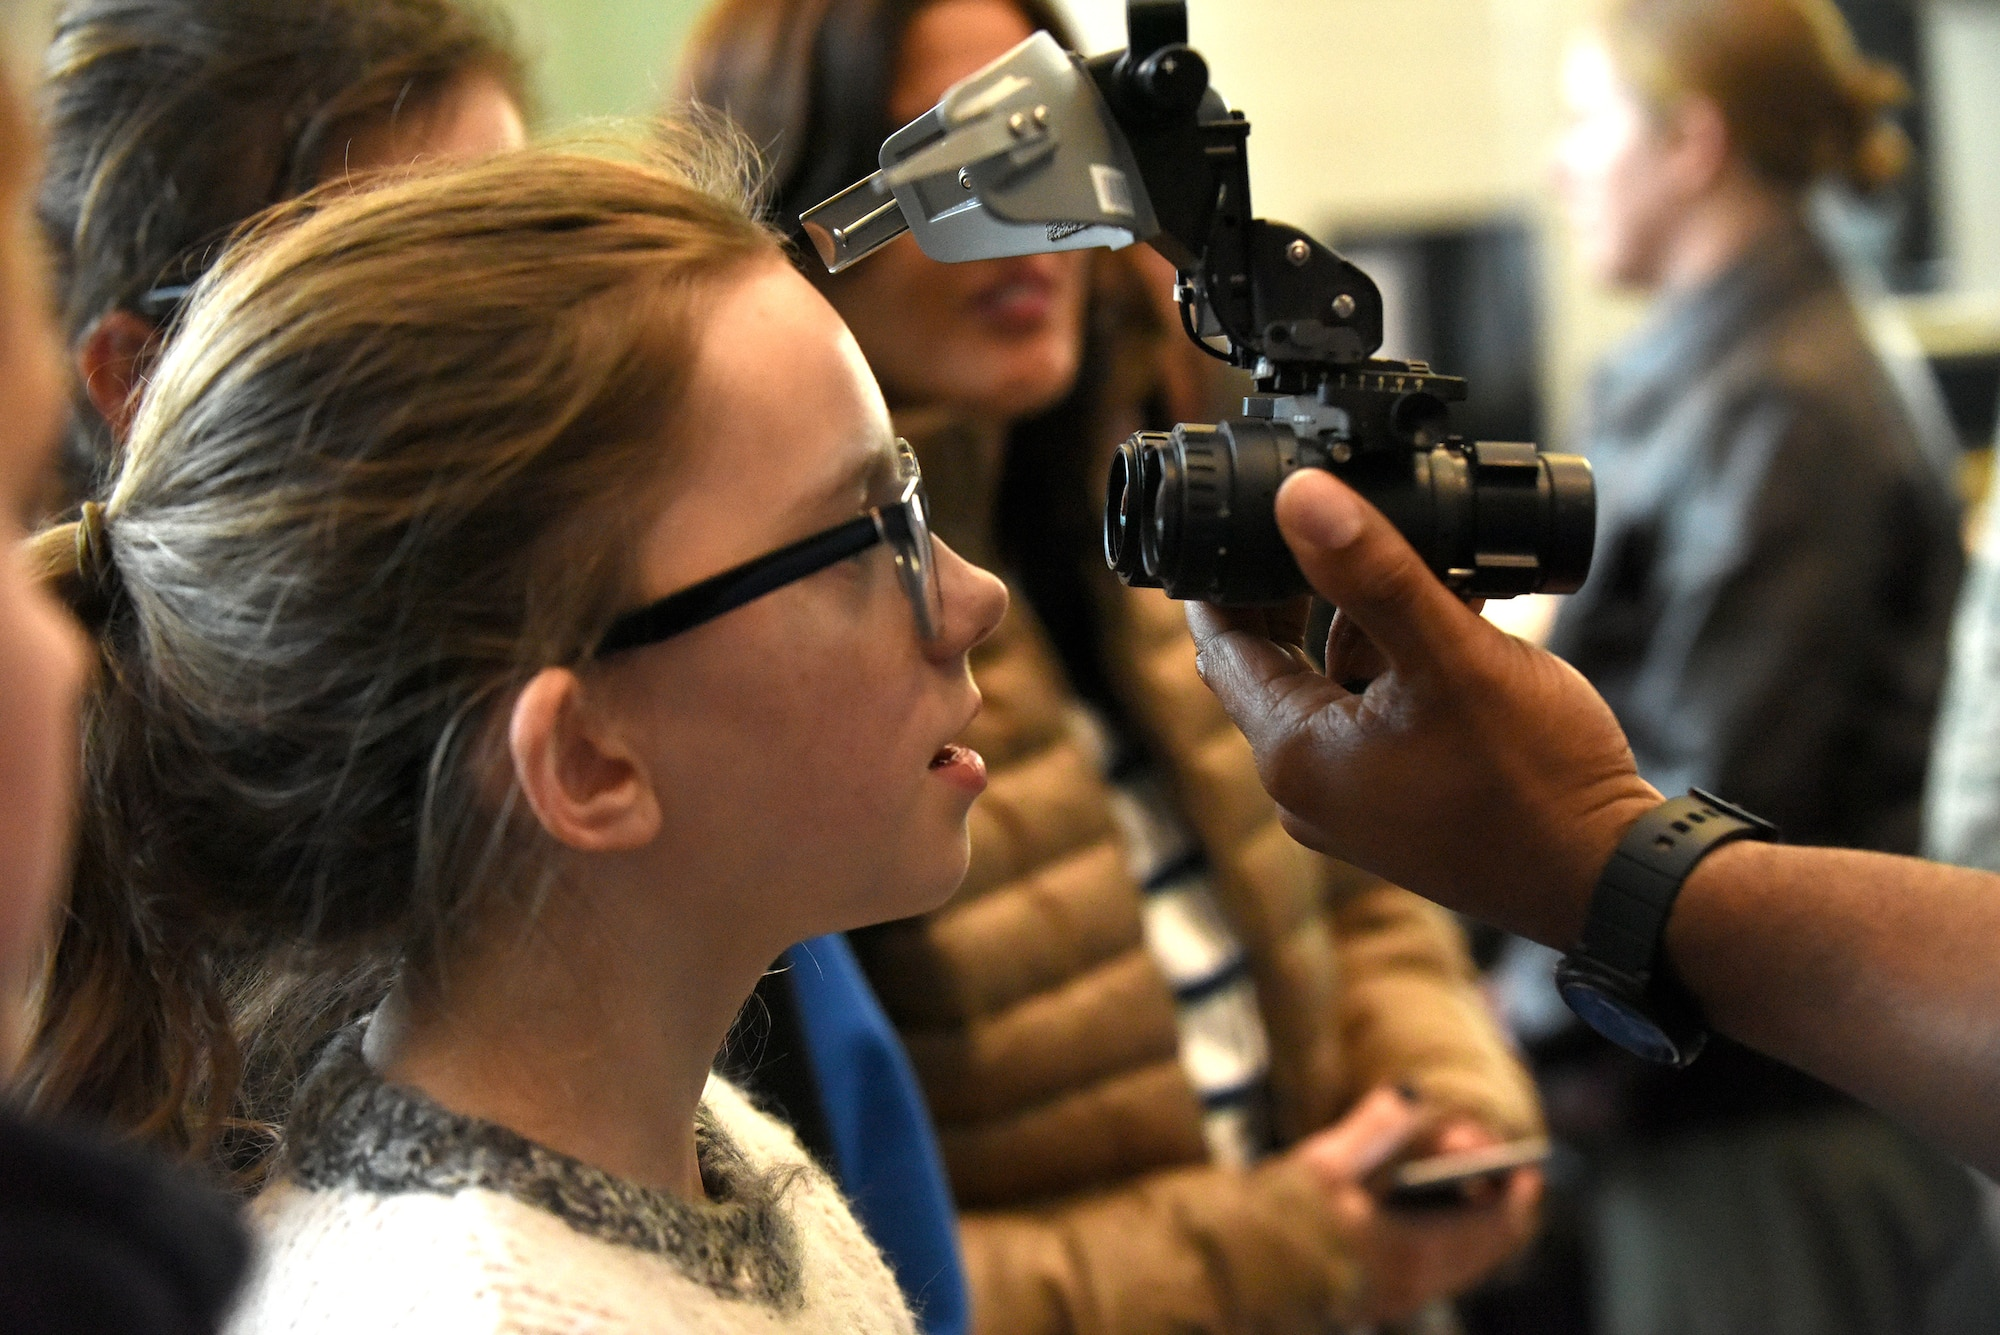 """People attend the STEM demonstration prior to a screening of the movie """"Captain Marvel"""" in Washington, D.C., March 7, 2019. The demonstration was held to inspire children to serve in the Air Force or STEM-related careers. (U.S. Air Force photo by Staff Sgt. Rusty Frank)"""